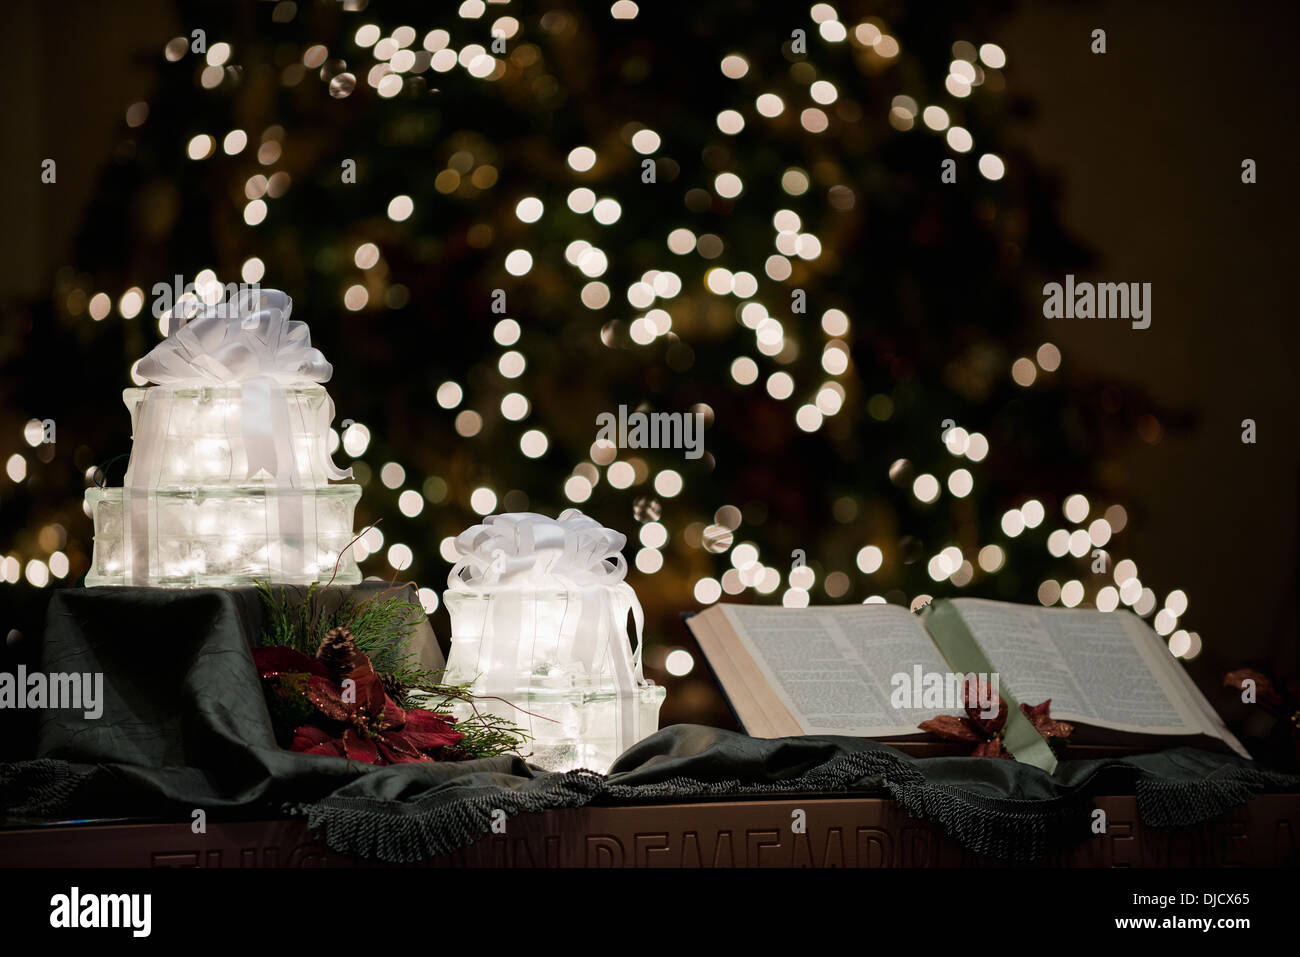 holy bible in front of a christmas tree stock photo 31993829 alamy